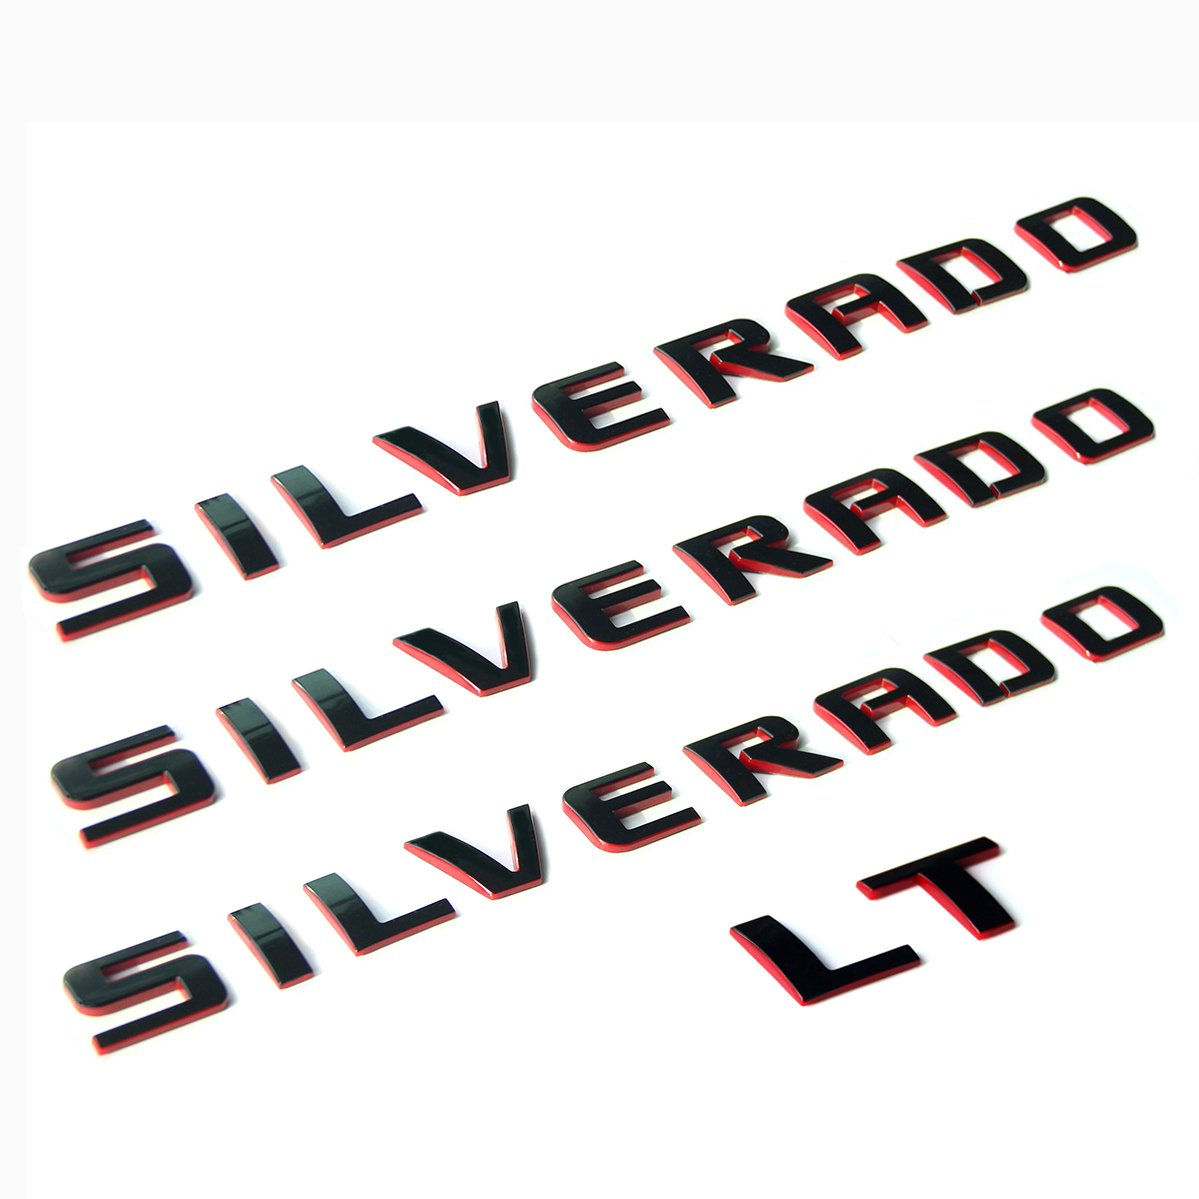 Yoaoo 3pcs OEM Silverado Nameplate Plus LT Letter Emblems 3D Badge 1500 2500HD 3500HD Original Silverado series Red Line Redline Yoaoo-GM